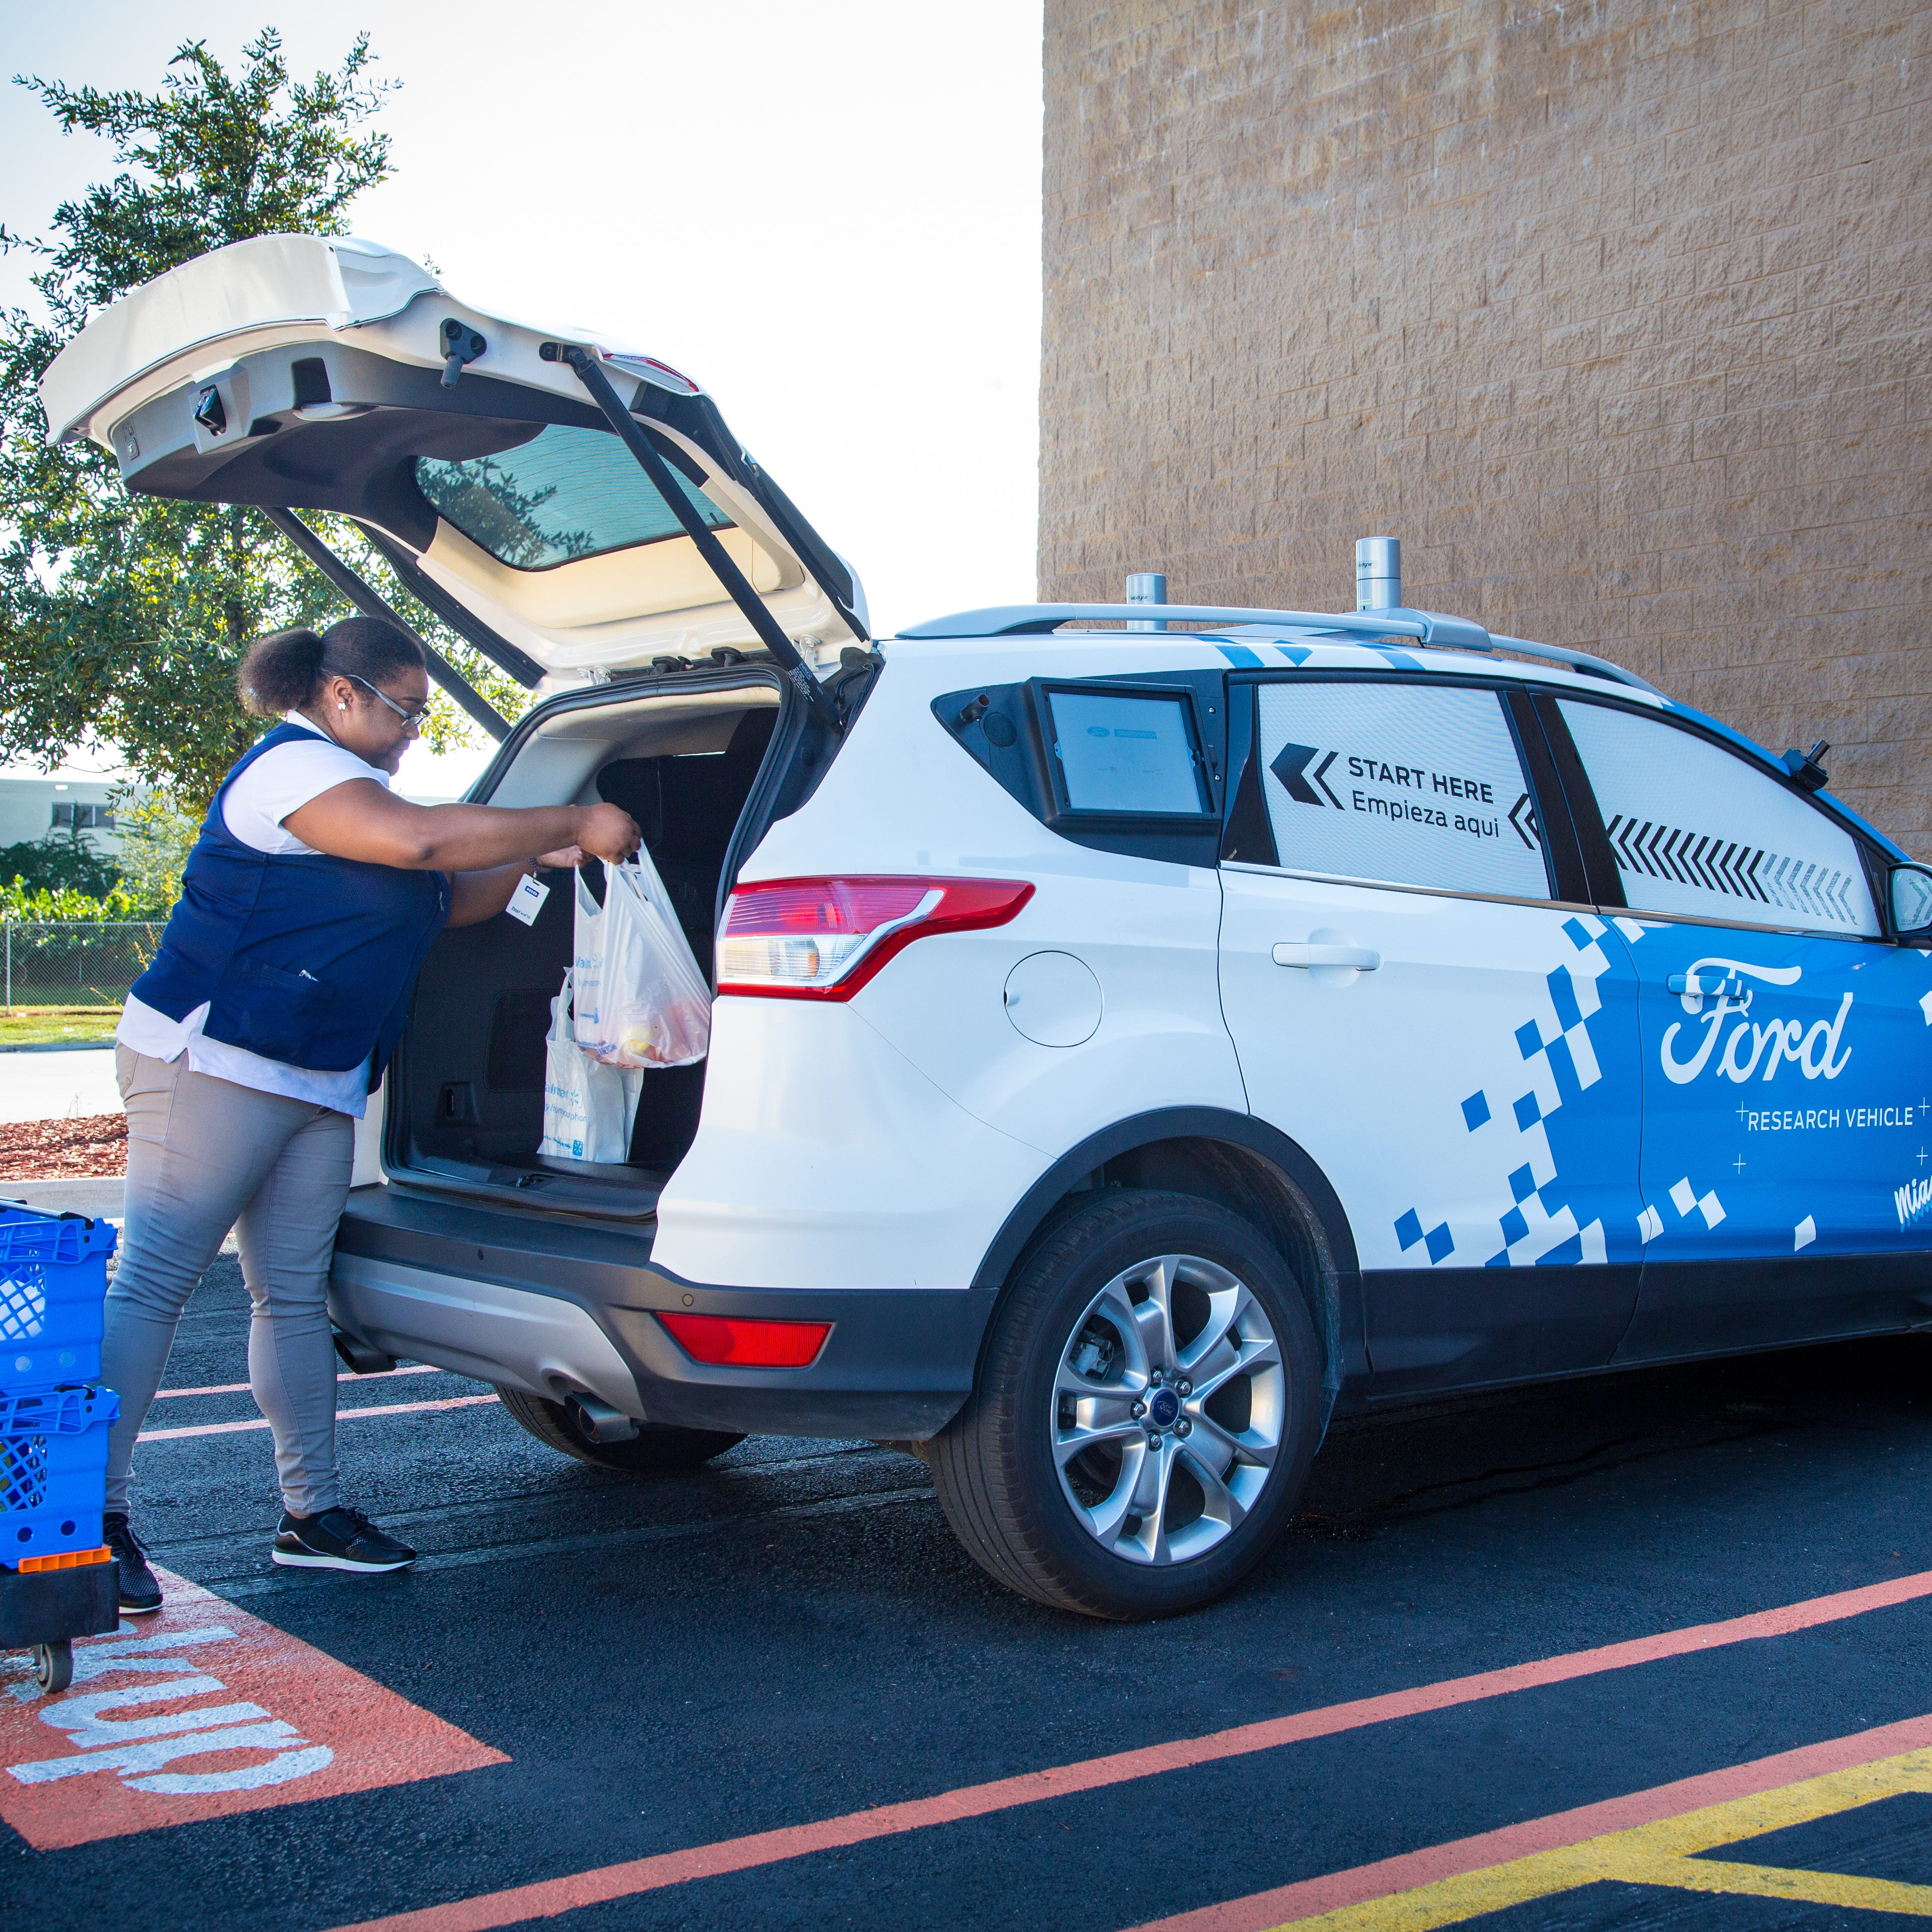 Ford, Walmart partner on self-driving grocery delivery